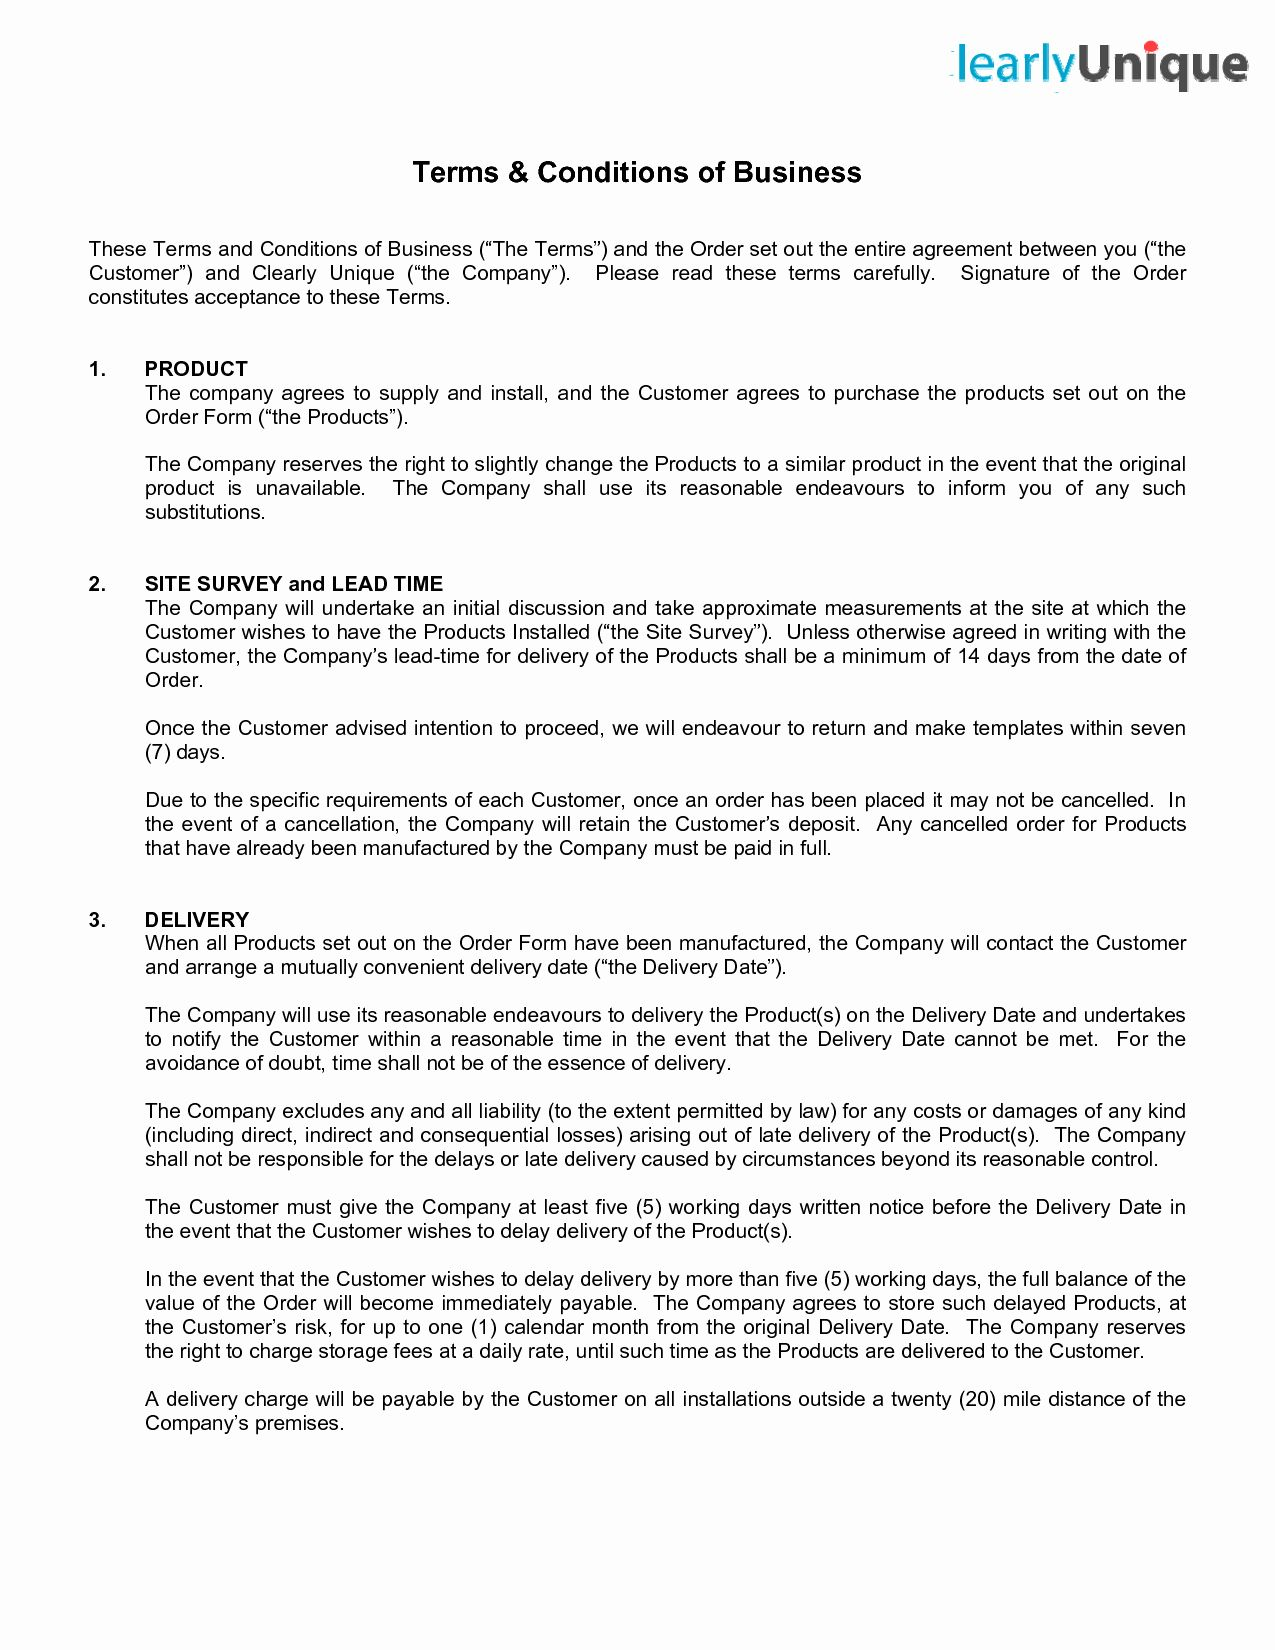 Terms Of Agreement Sample Awesome Terms And Conditions Template Professional Templates Business Template Agreement Artist terms and conditions template